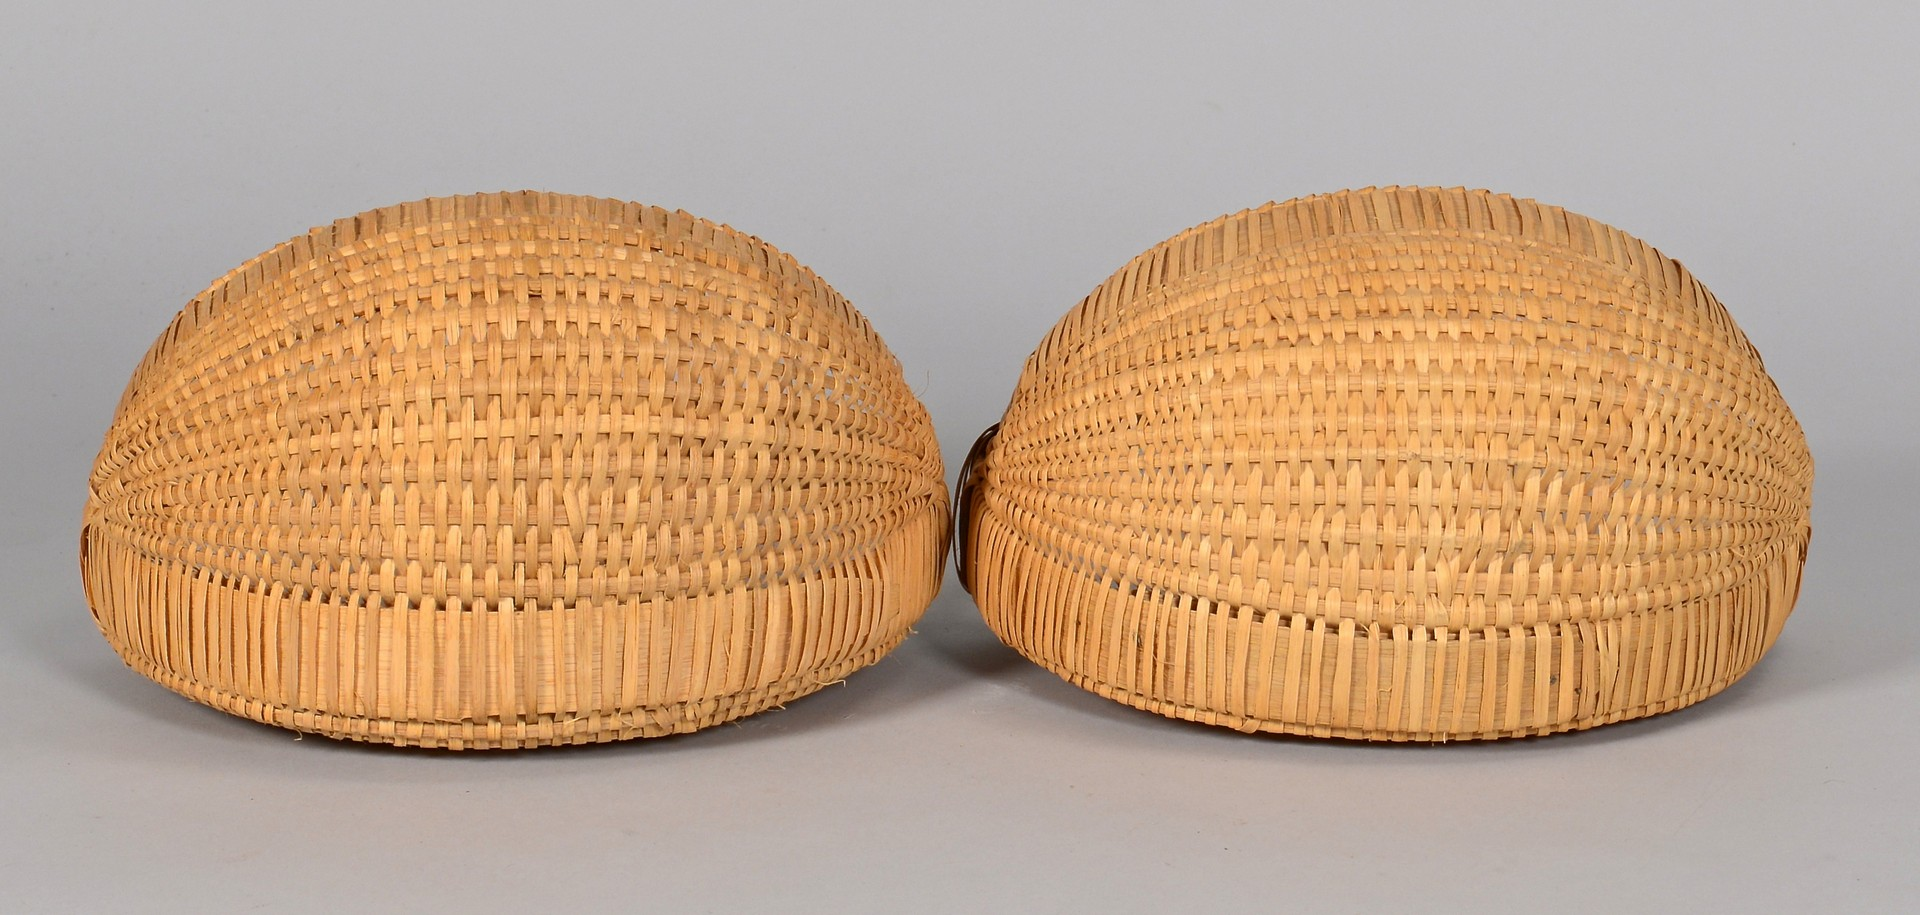 Lot 265: 7 Mildred Youngblood Baskets